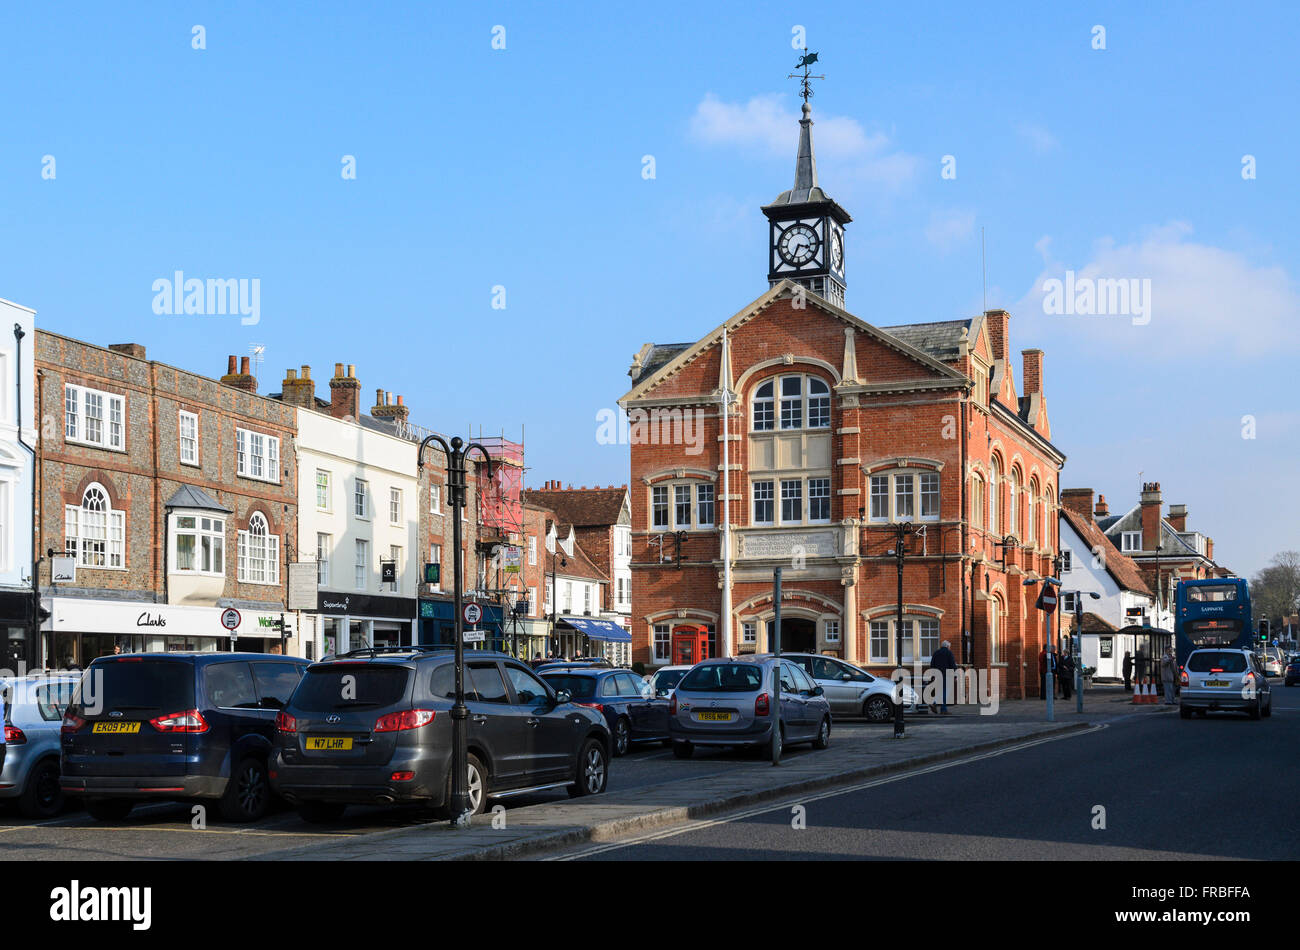 The Town Hall, home of Town Council, High Street, Thame, Oxfordshire, England, UK. Stock Photo